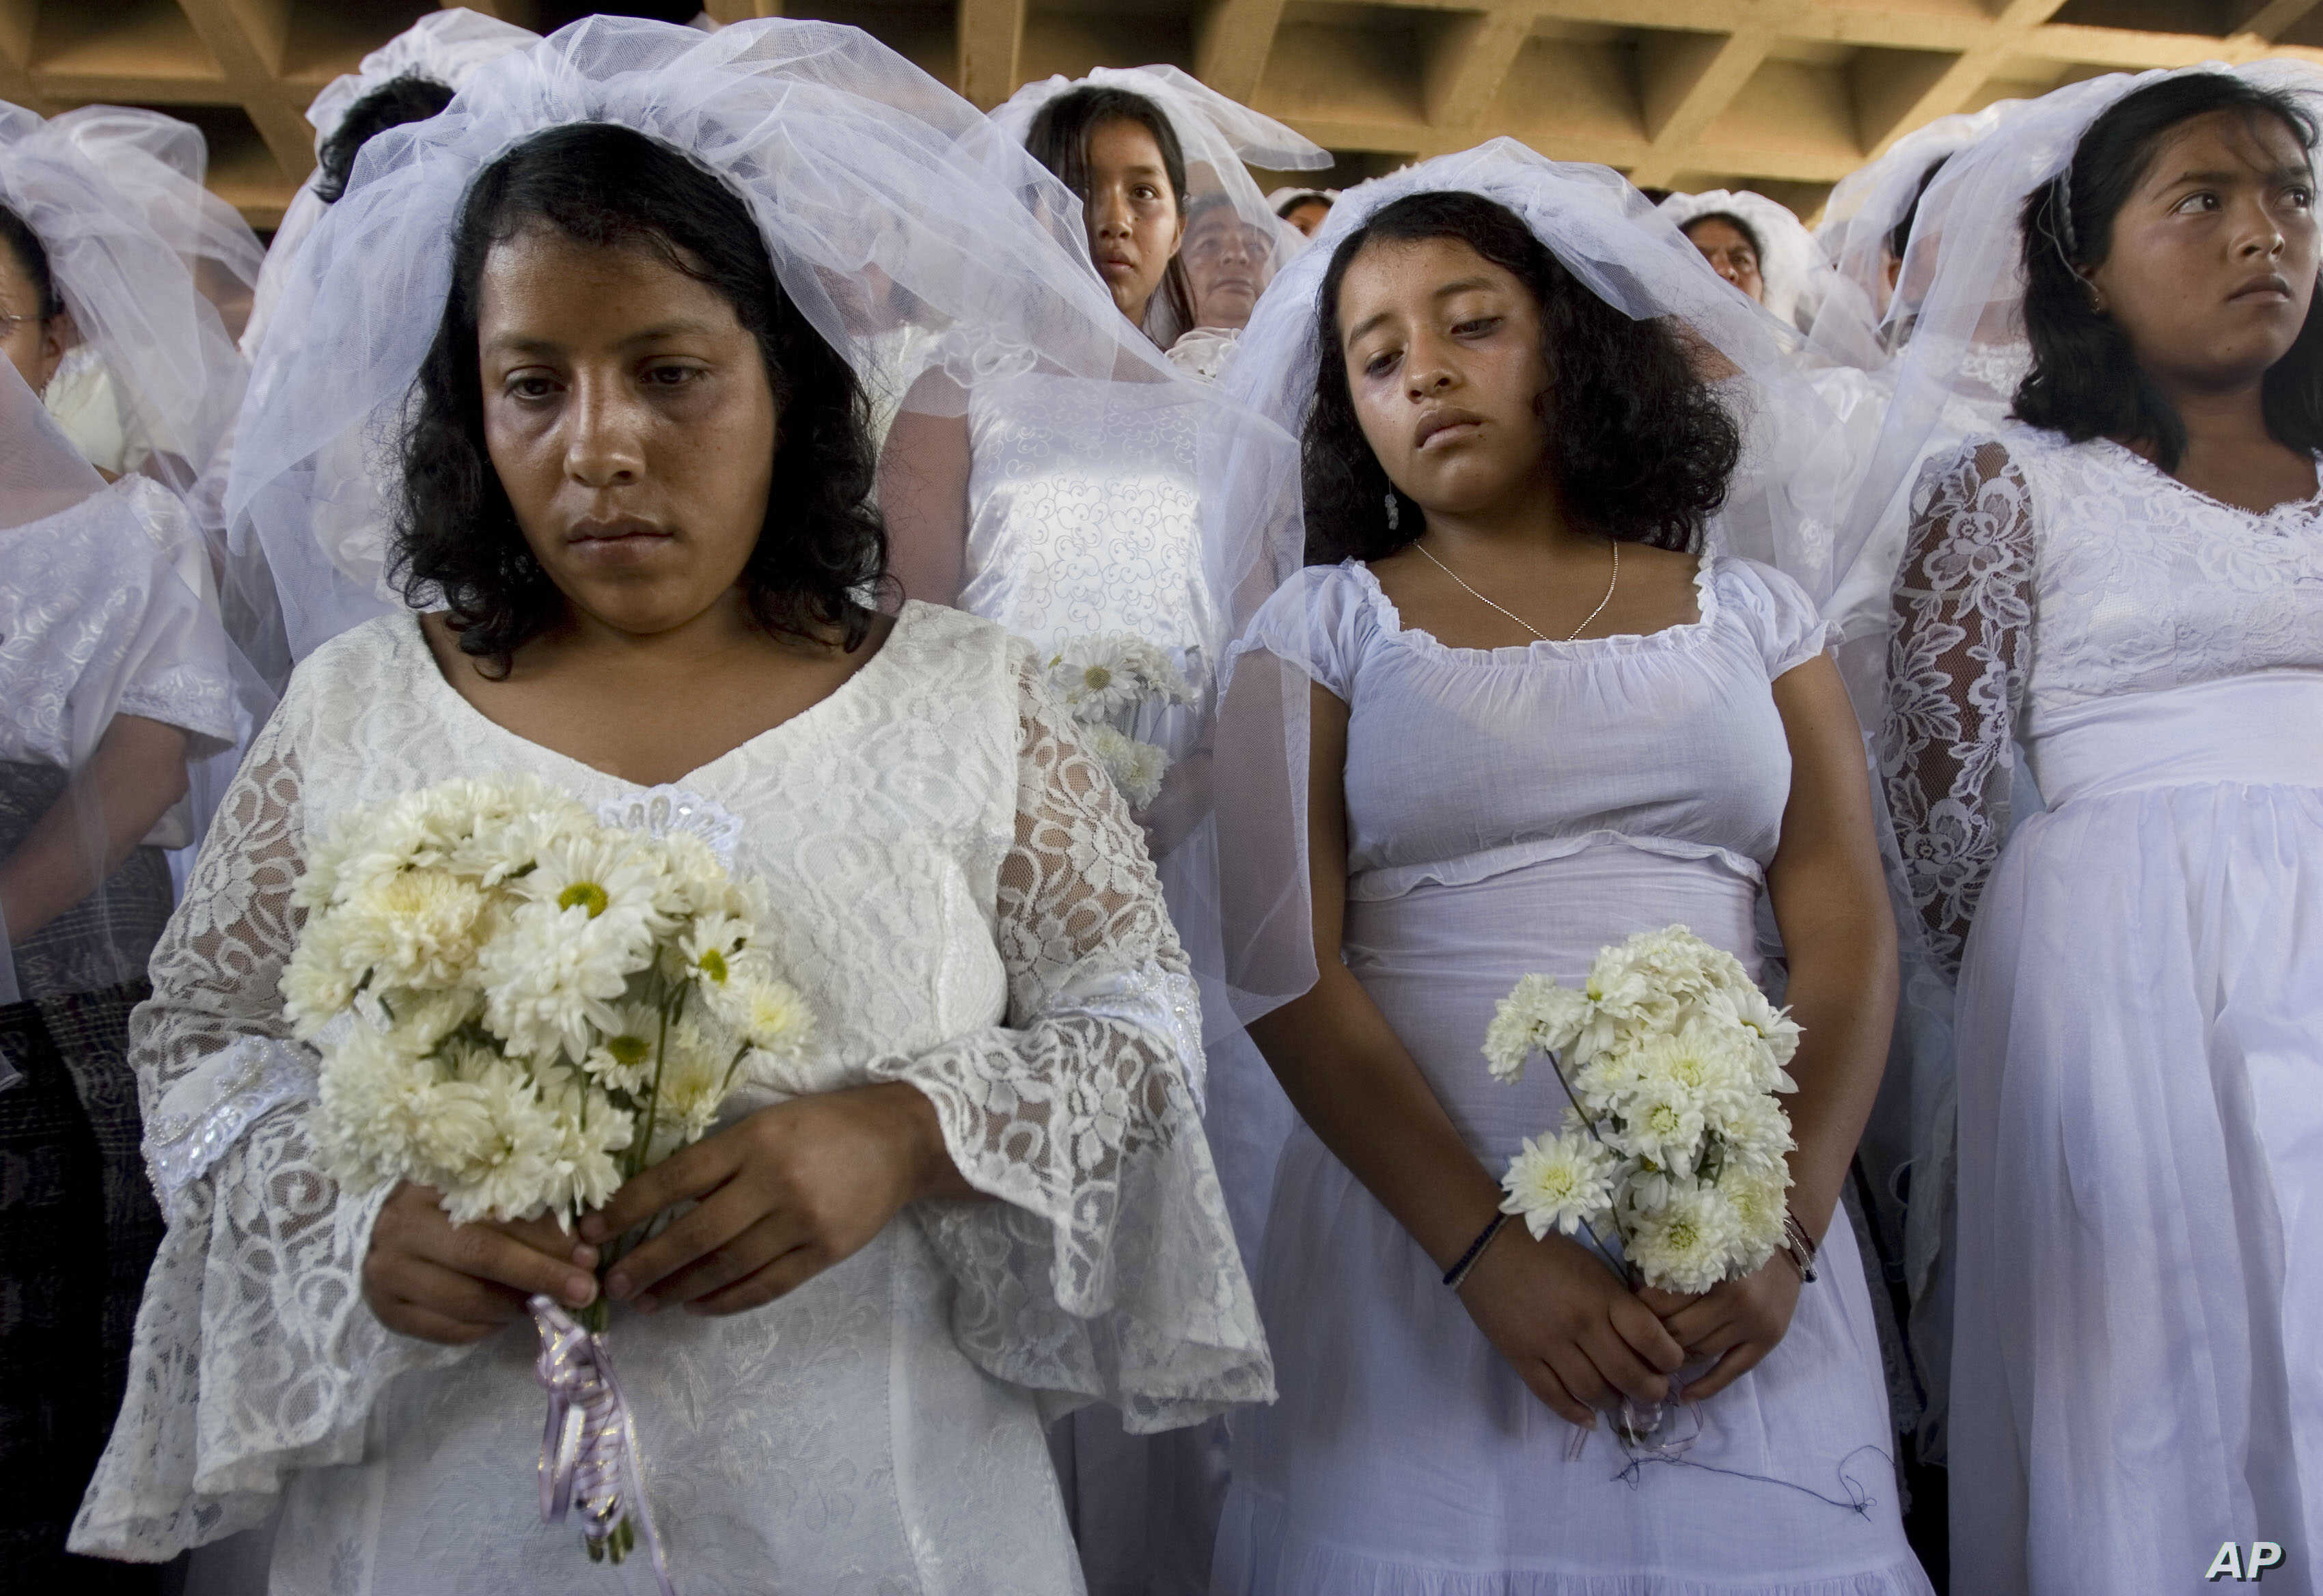 Child Marriage Persists in Guatemala Despite Ban, Experts